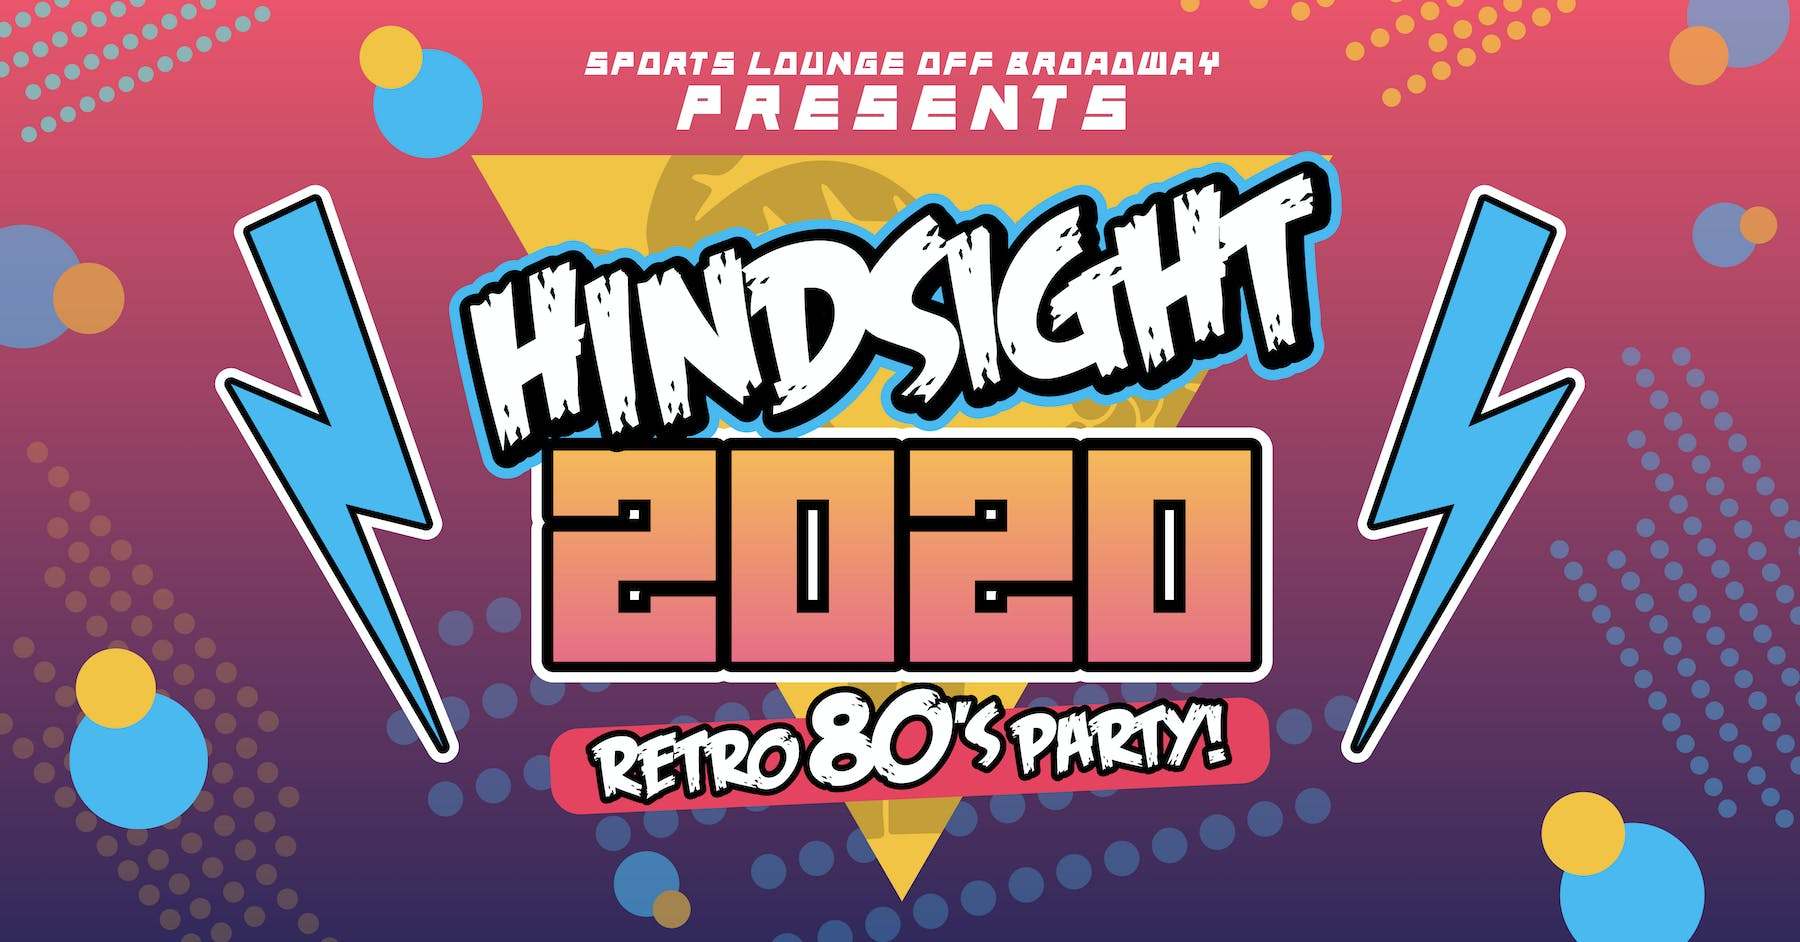 Hindsight 2020 Party